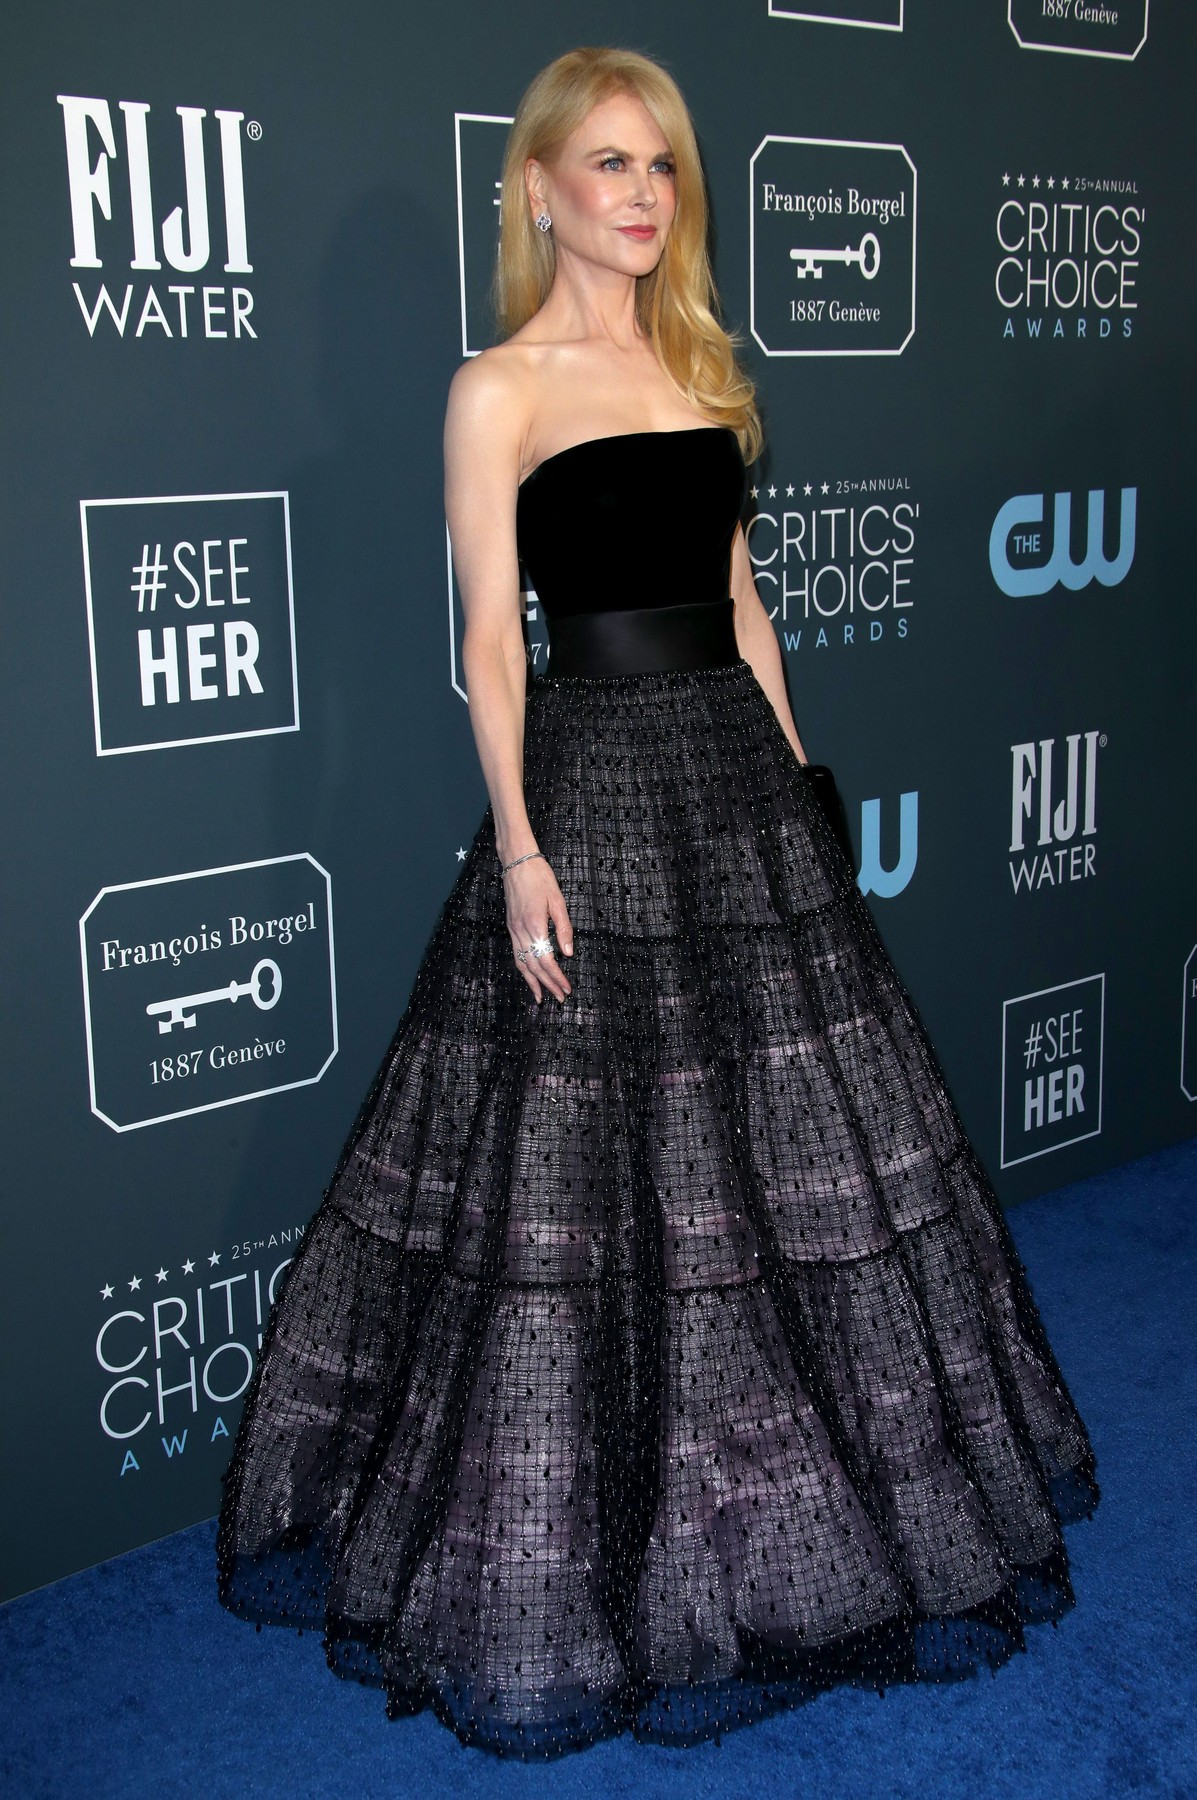 Nicole Kidman 25th Annual Critics' Choice Awards, Arrivals, Barker Hanger, Los Angeles, USA - 12 Jan 2020, Image: 492412480, License: Rights-managed, Restrictions: , Model Release: no, Credit line: Matt Baron / Shutterstock Editorial / Profimedia